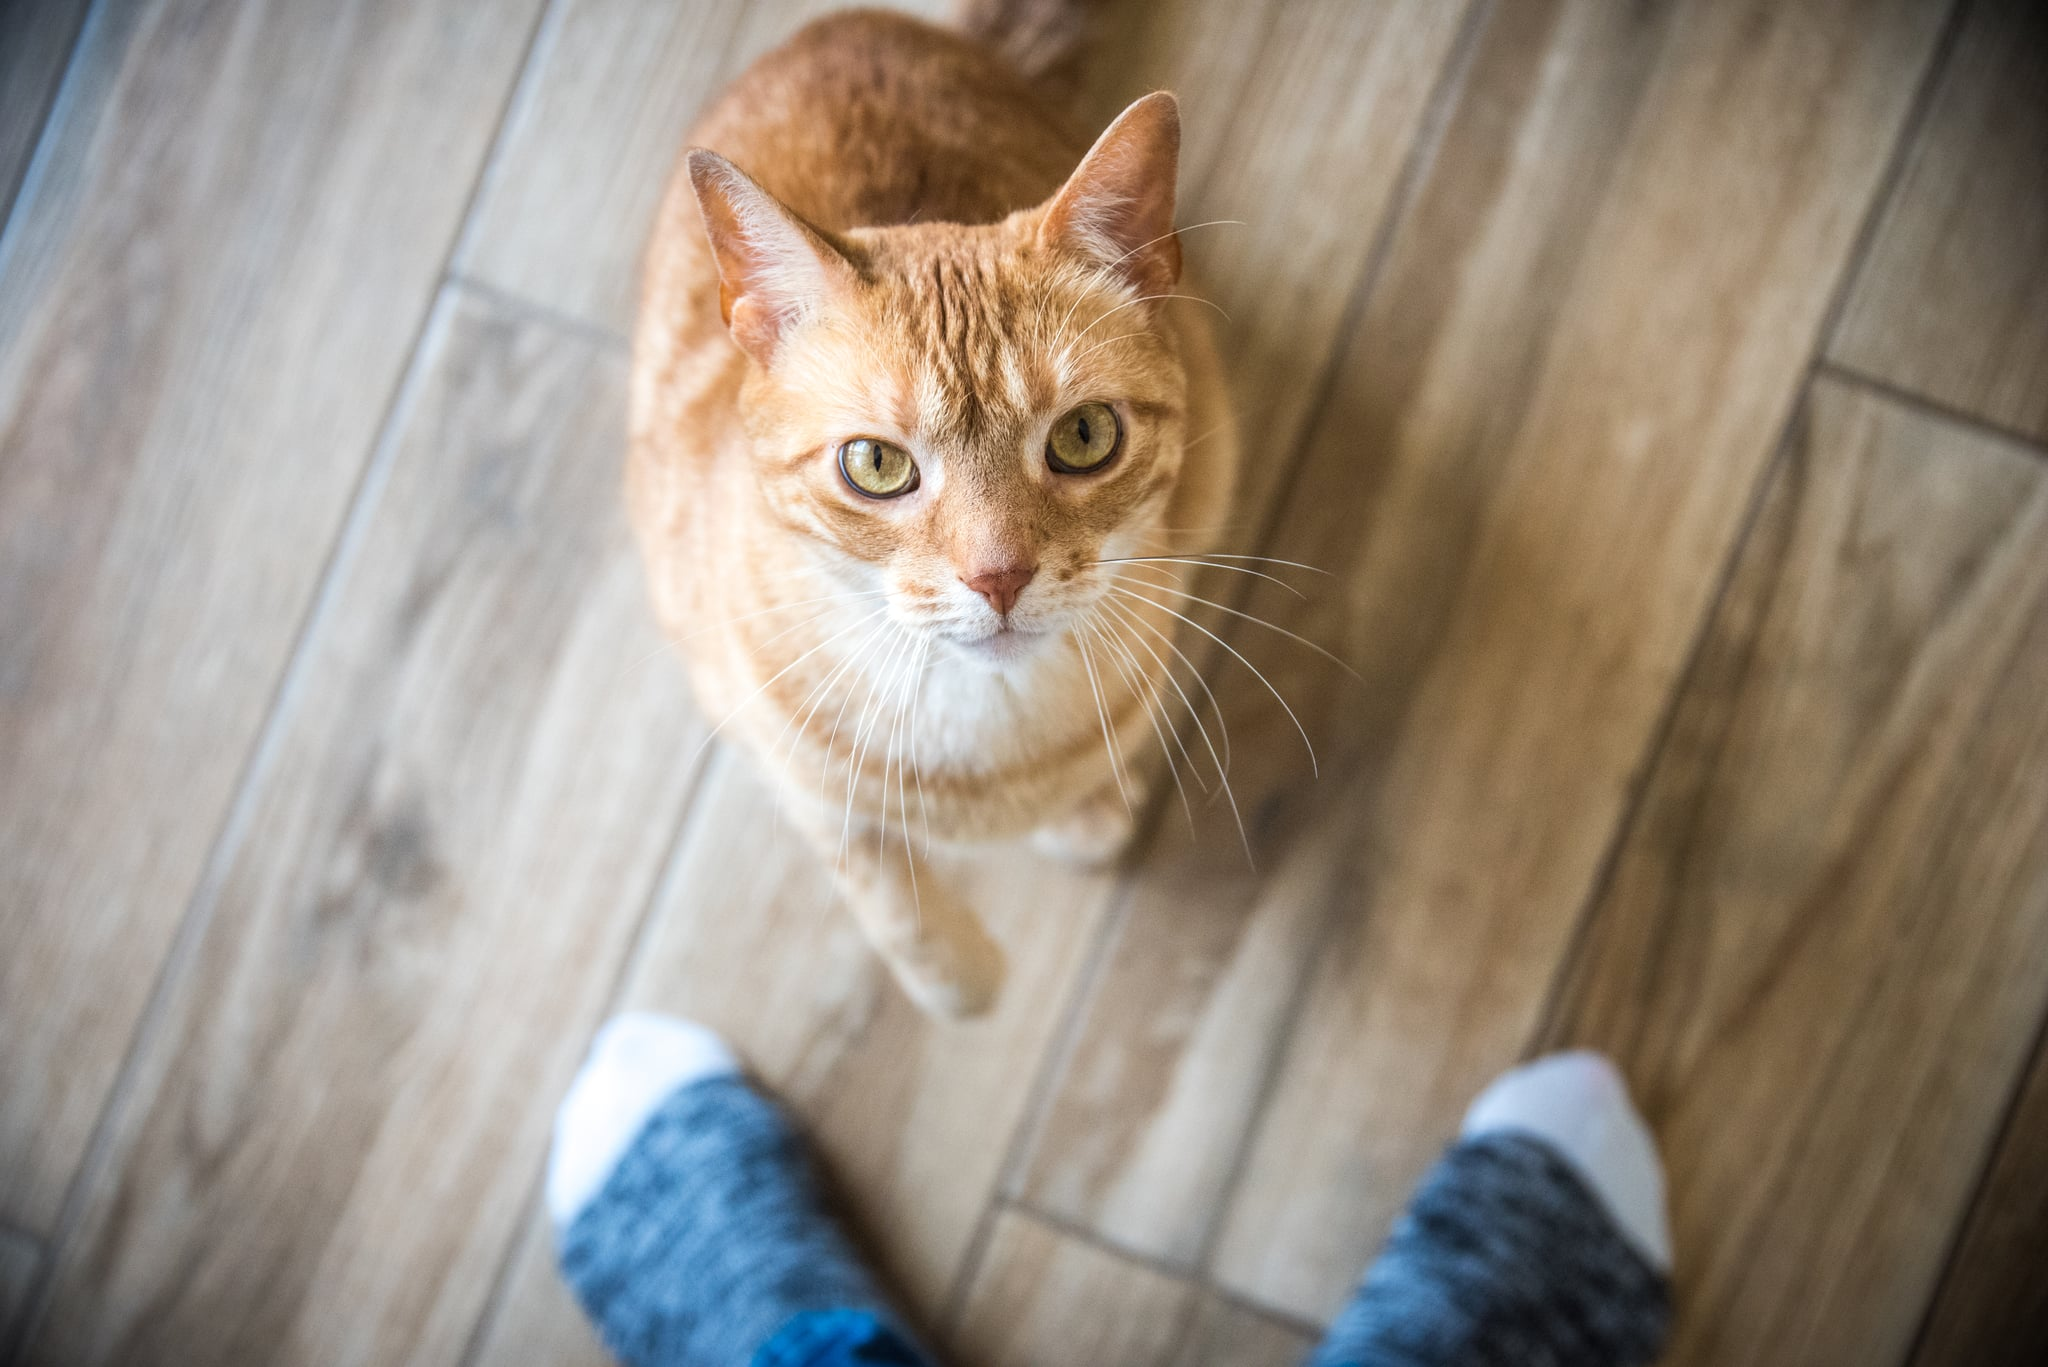 An orange tabby cat looks up at its owner, sock feet are visible